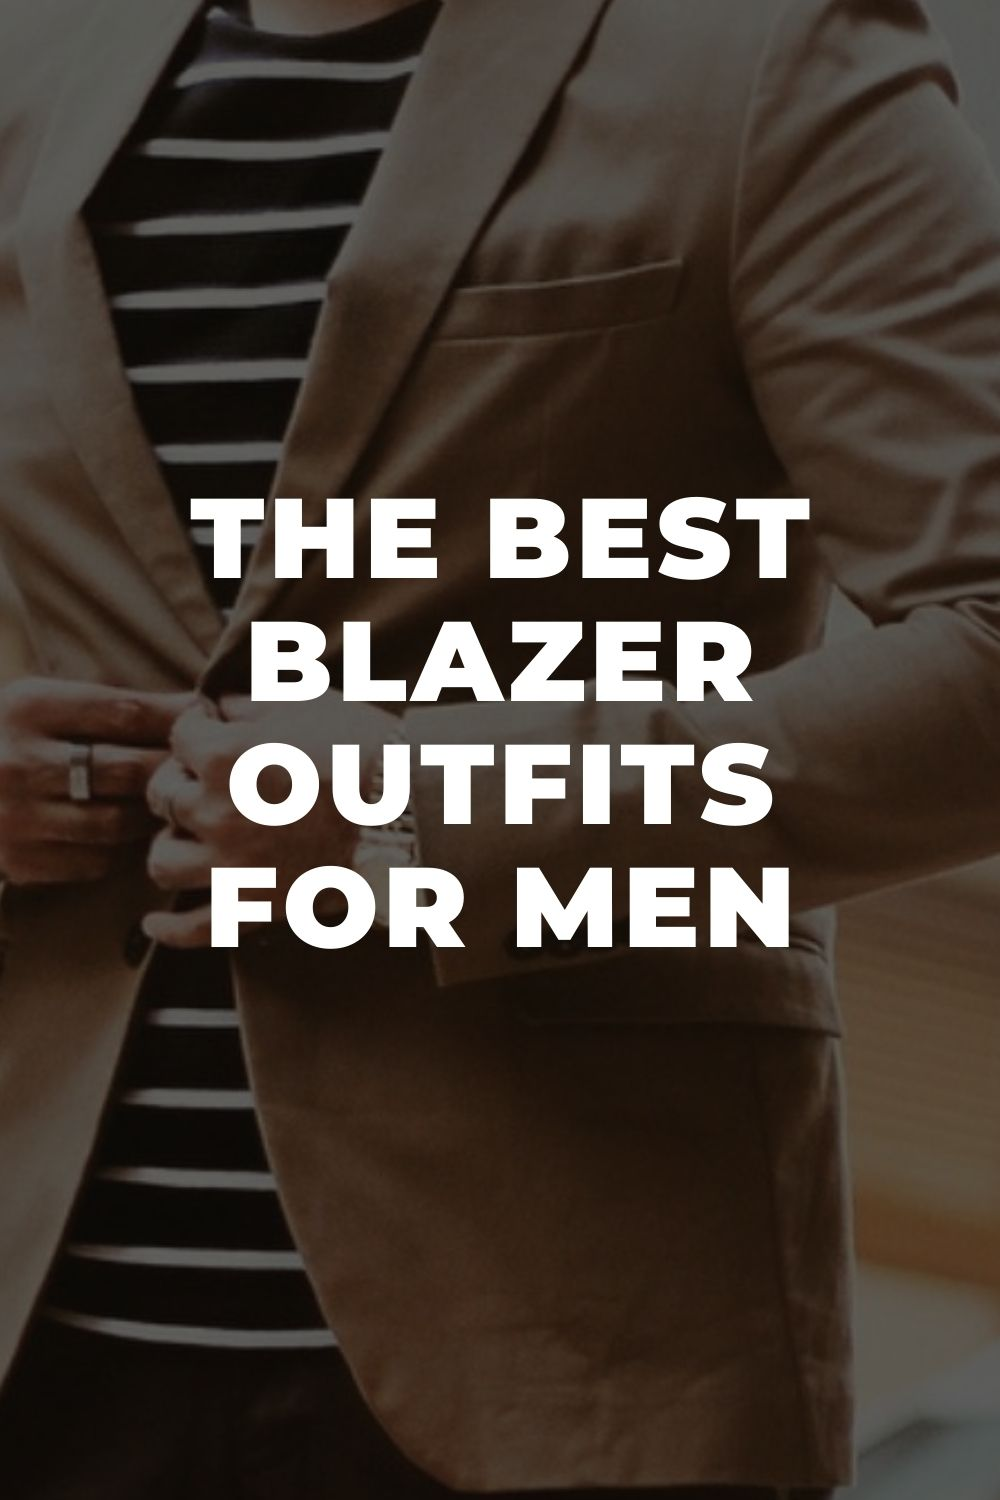 The Best Blazer Outfits For Men